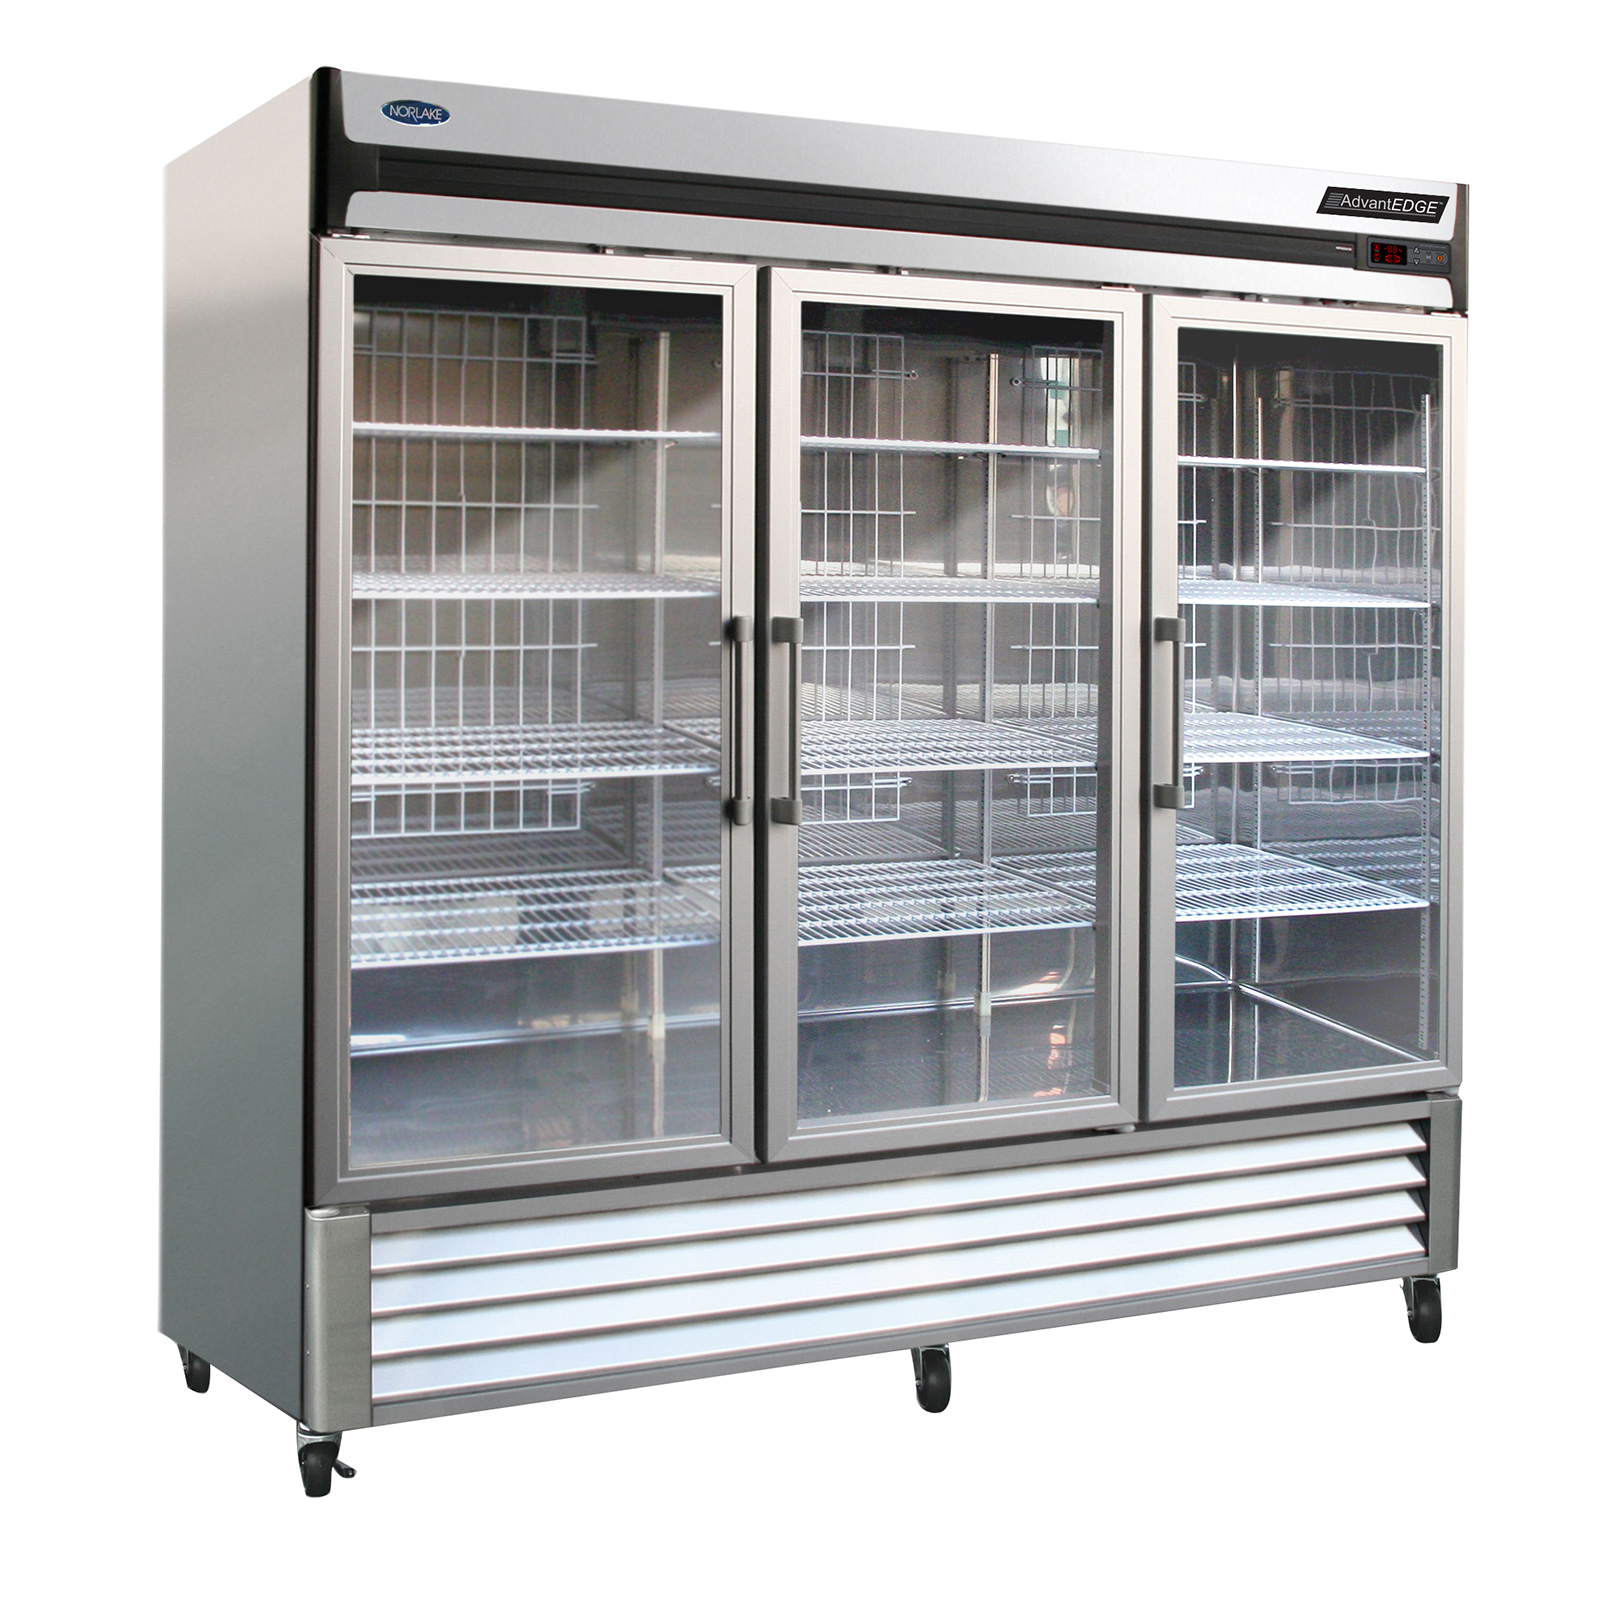 Nor-Lake NLR72-G refrigerator, reach-in